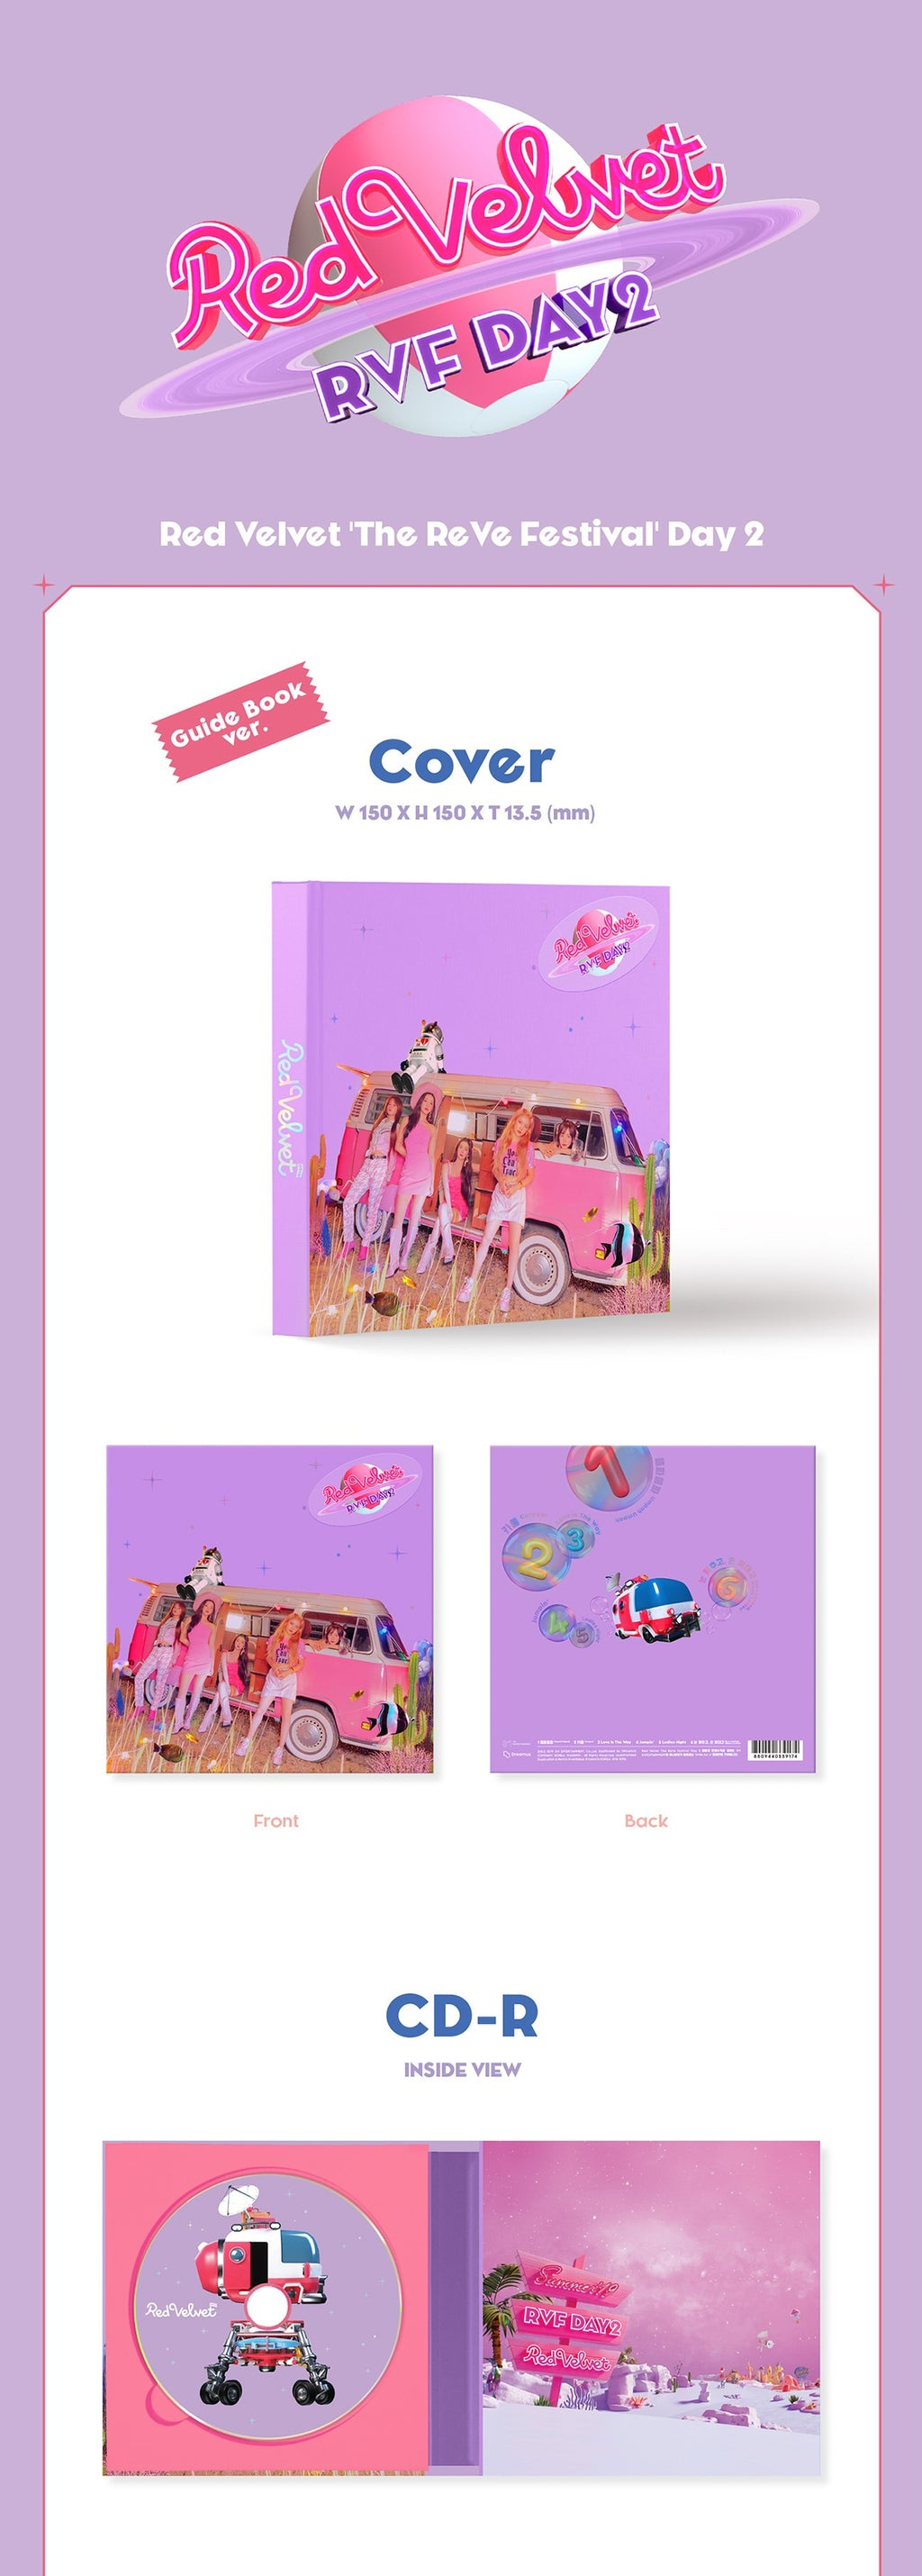 Red Velvet - The ReVe Festival Day 2 - Guide Book Version - J-Store Online